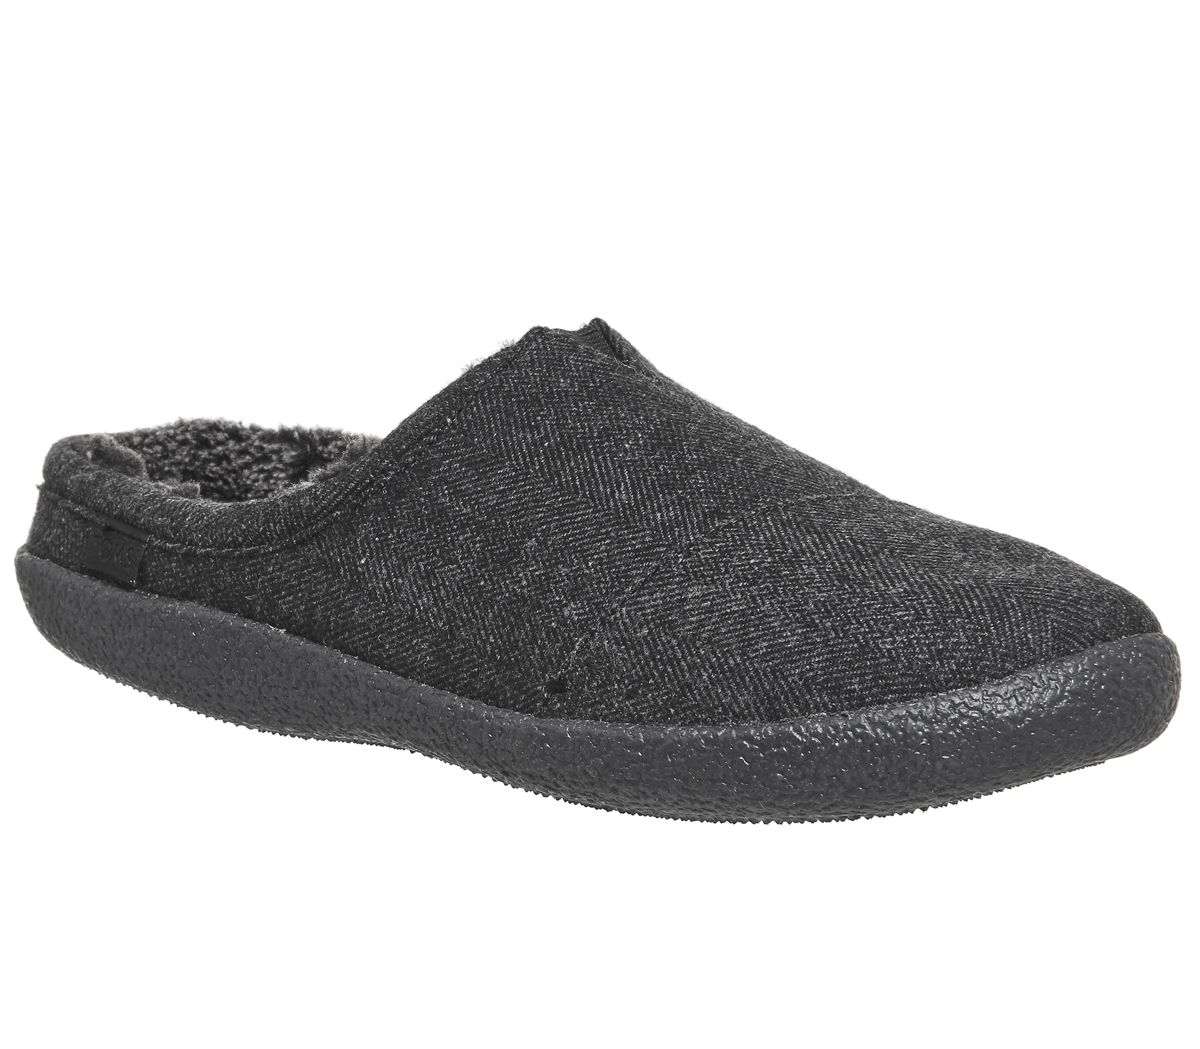 4684bfef4934 Toms Berkeley Slippers Black Herringbone Woolen - Slippers